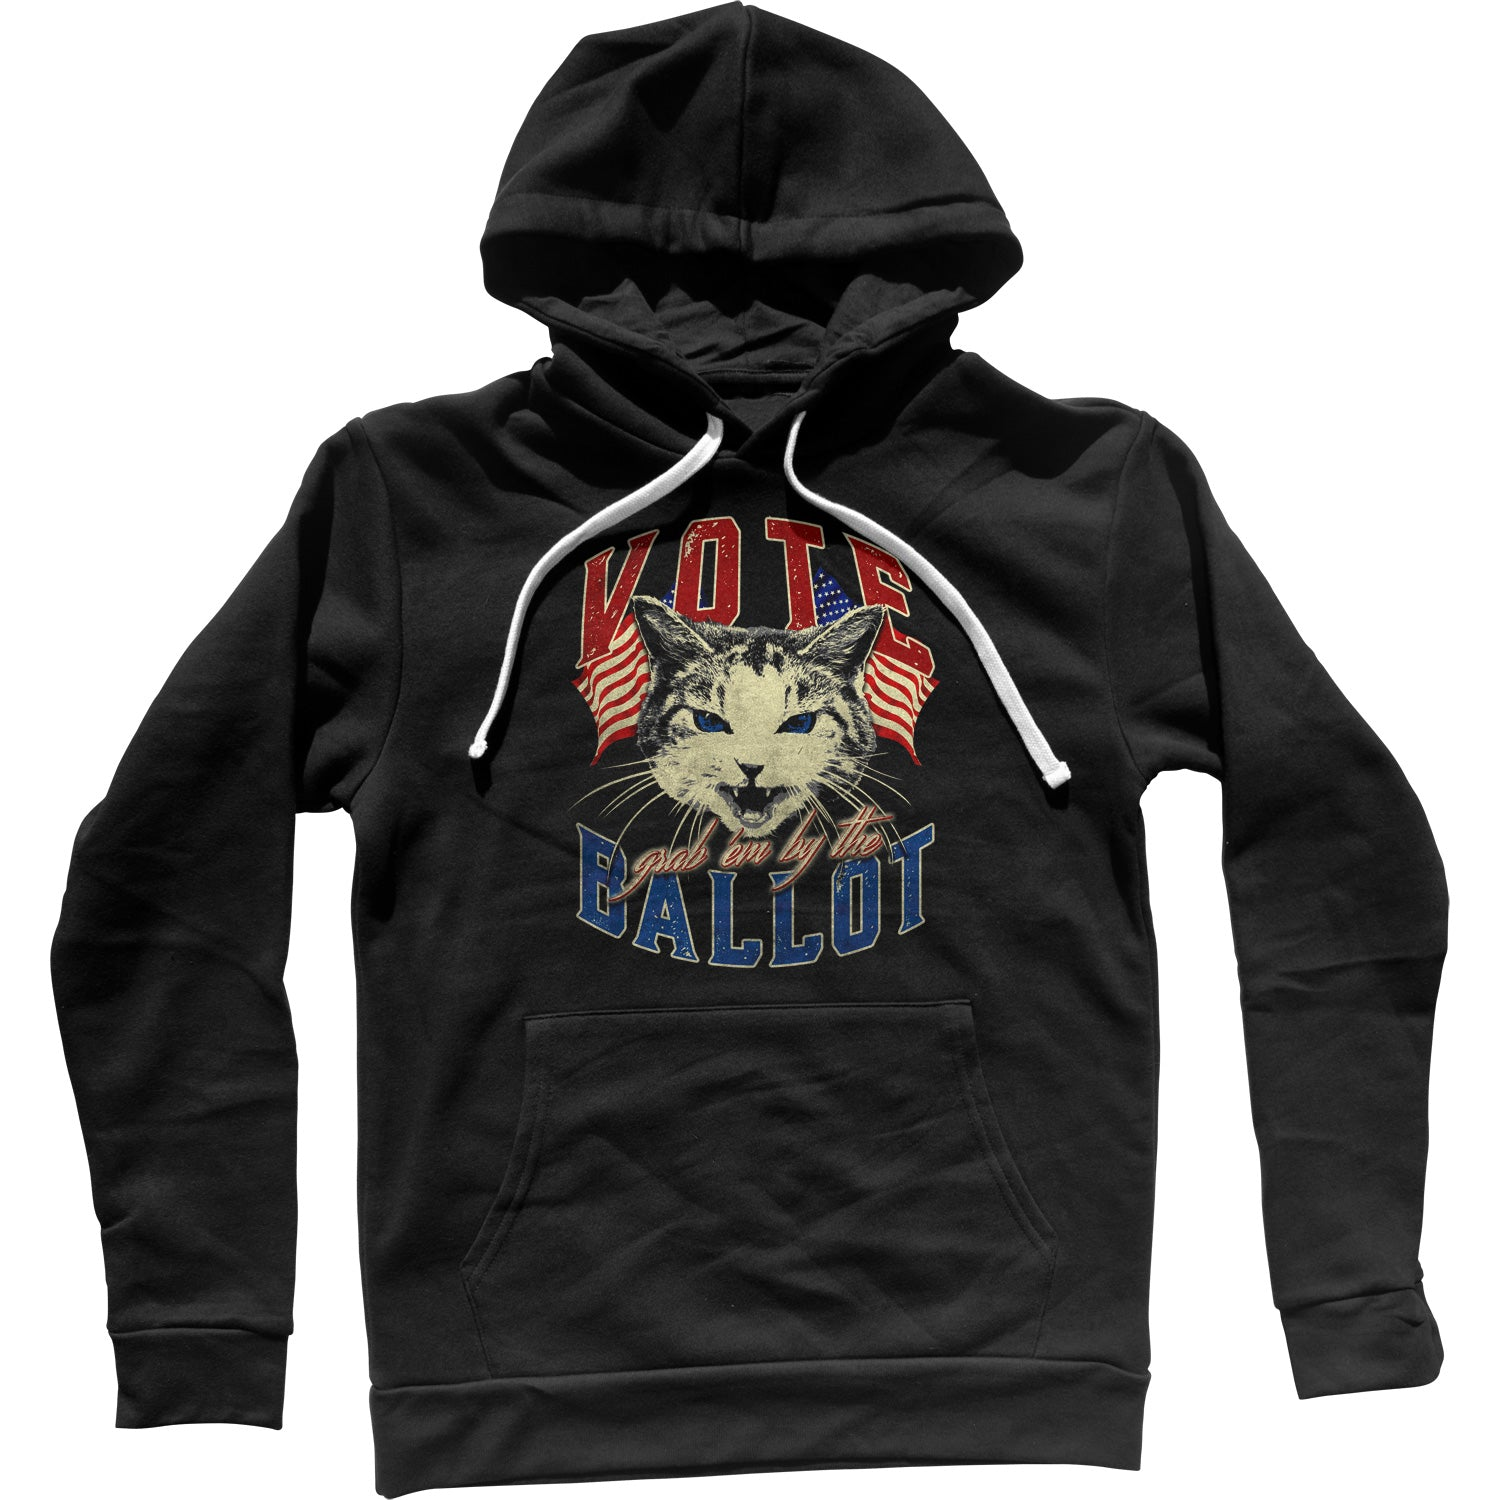 Vote! Grab Em By The Ballot Election Cat Unisex Hoodie